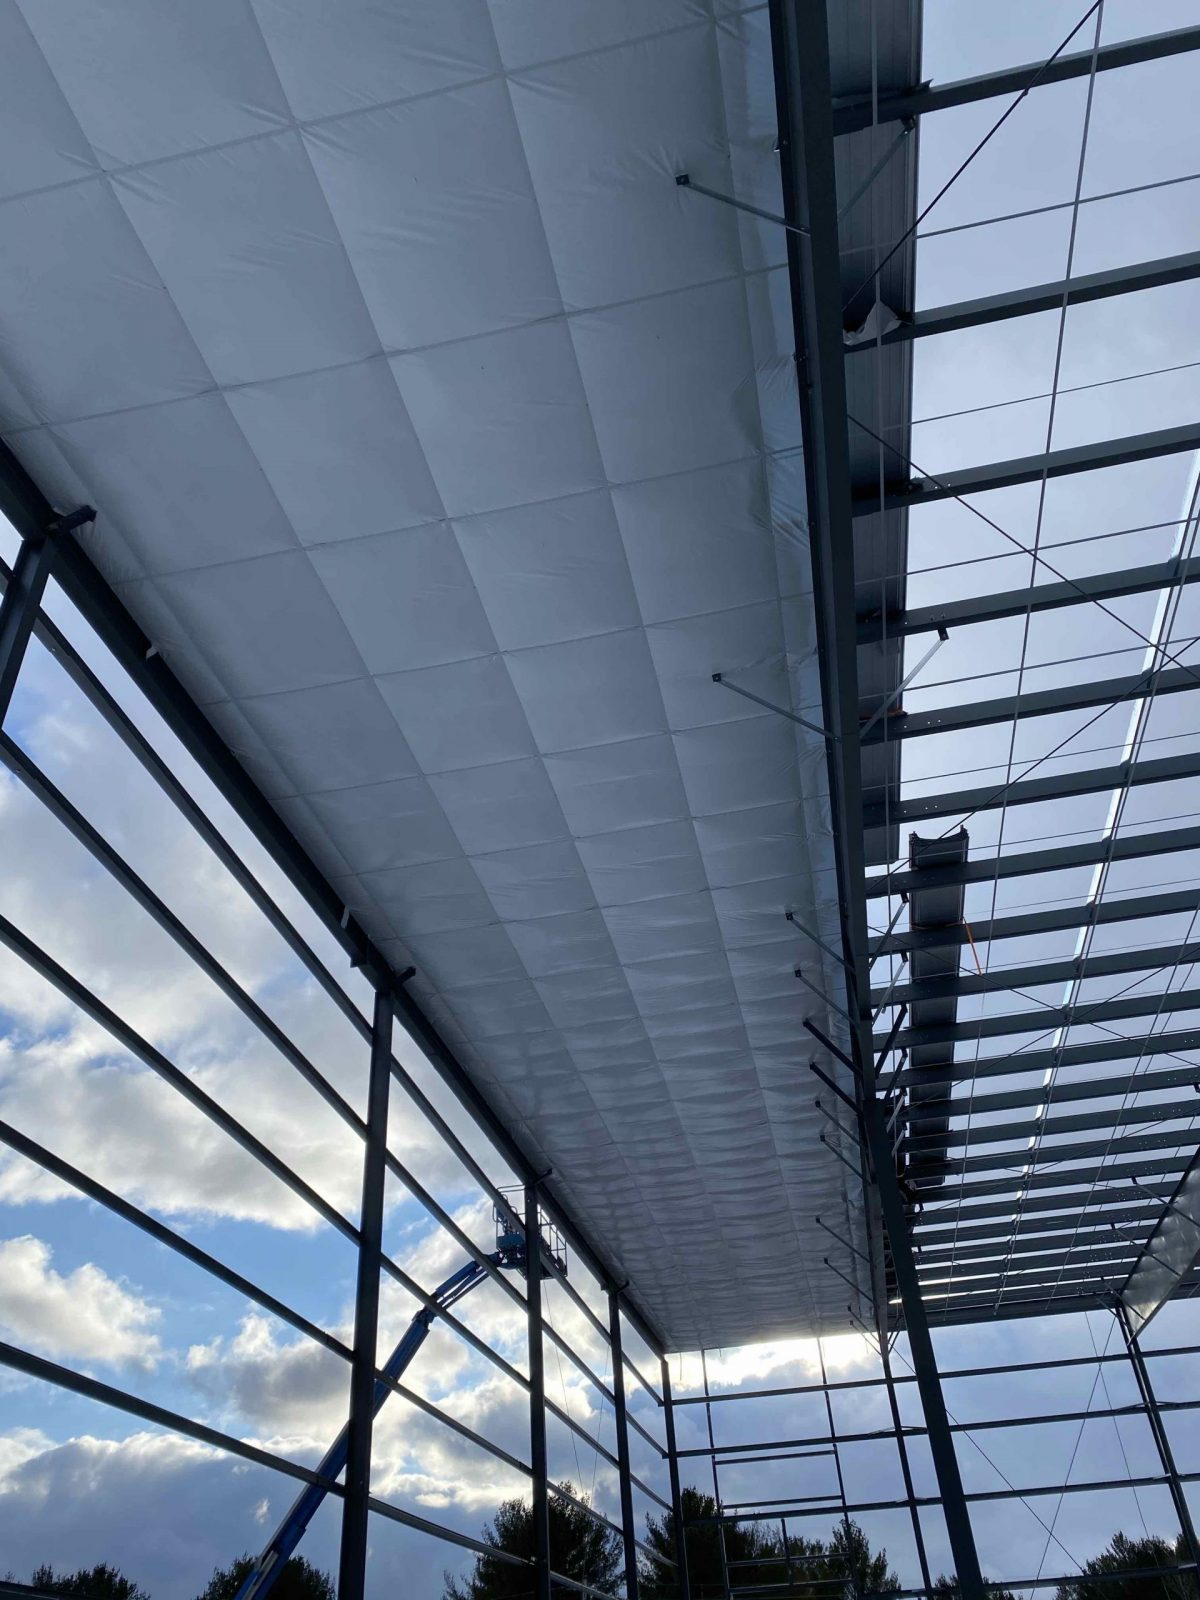 Photos of LOBO Development Warehouse - BB GUNN offers pre-engineered metal building erecting, installation of wall cladding systems, steel roofs and insulated metal panel, structural steel, welding, and steel decking.